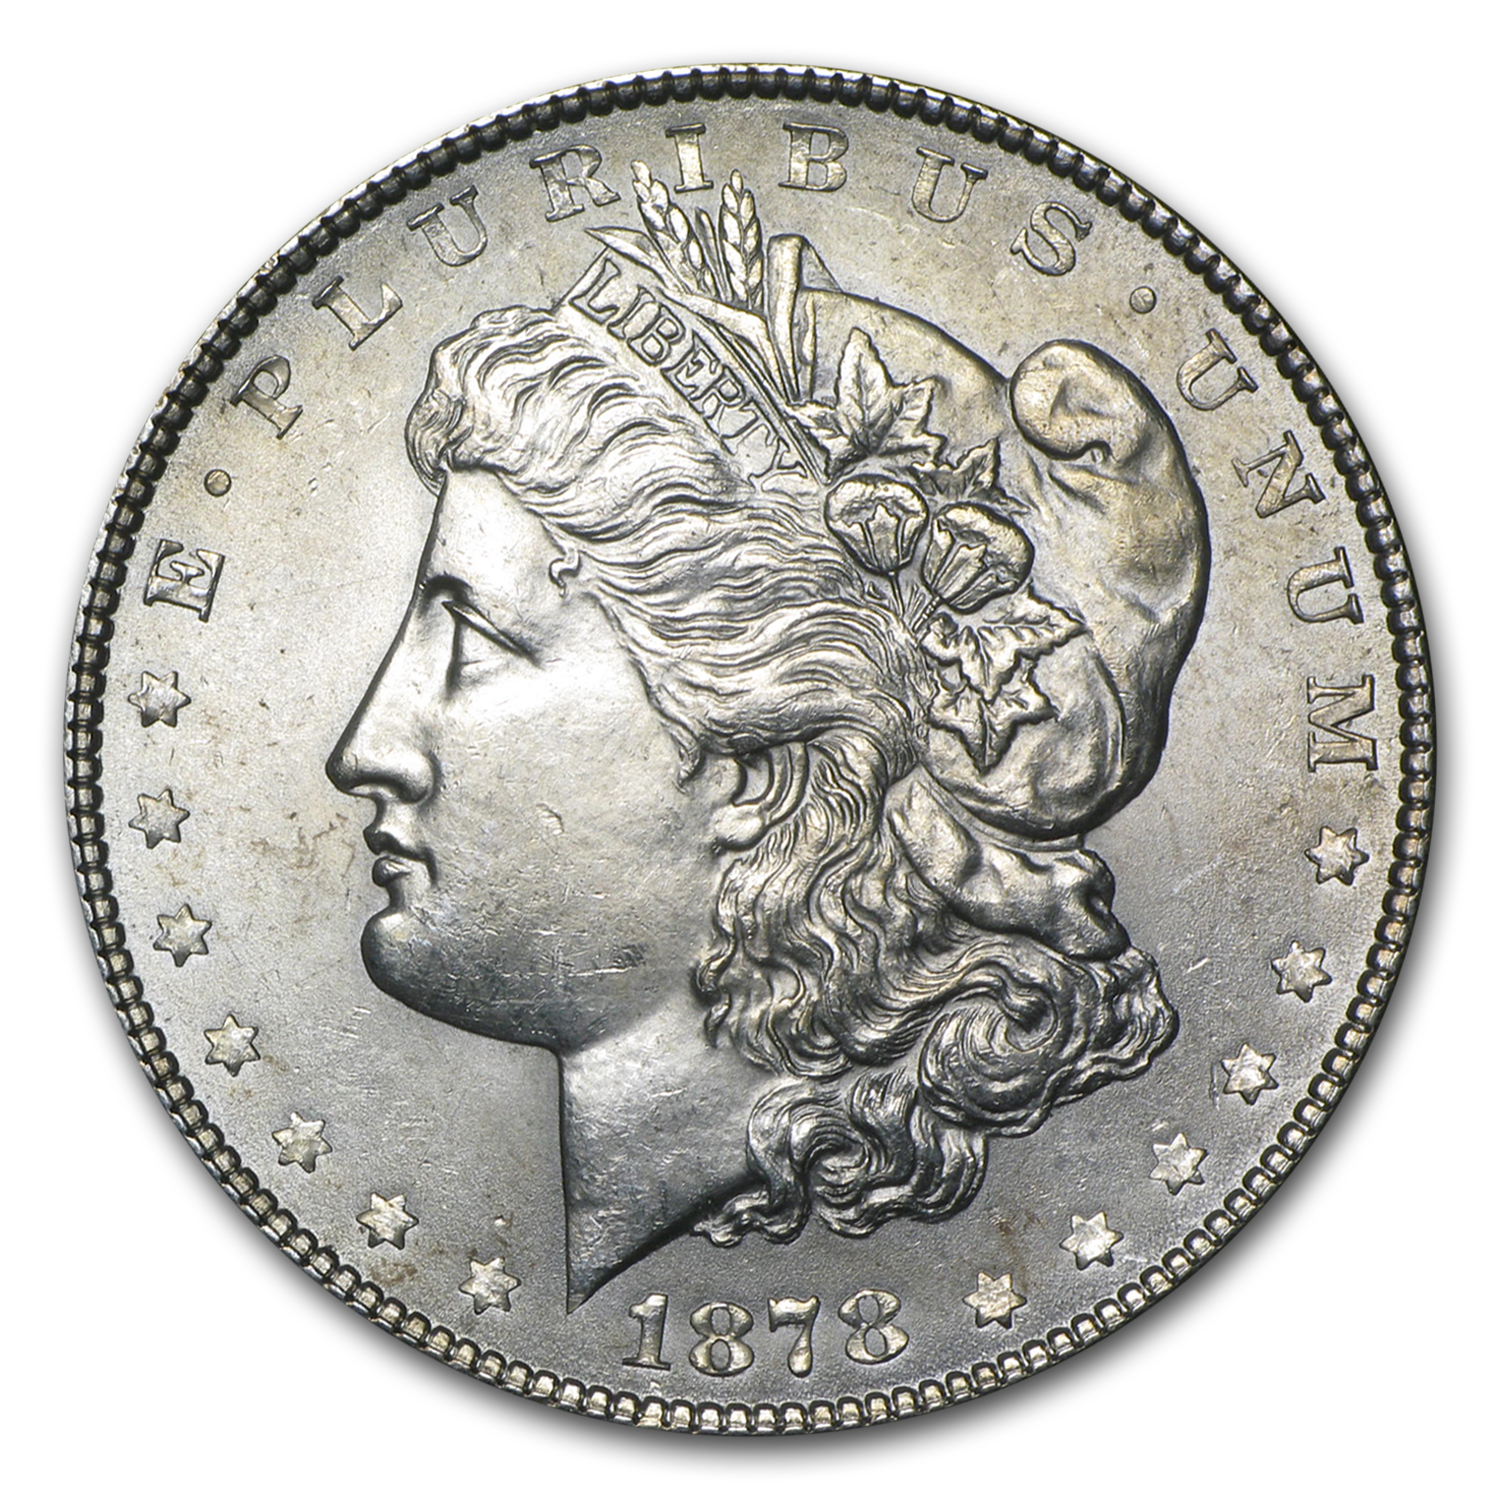 1878 Morgan Dollar 7 Tailfeathers Rev of 78 AU